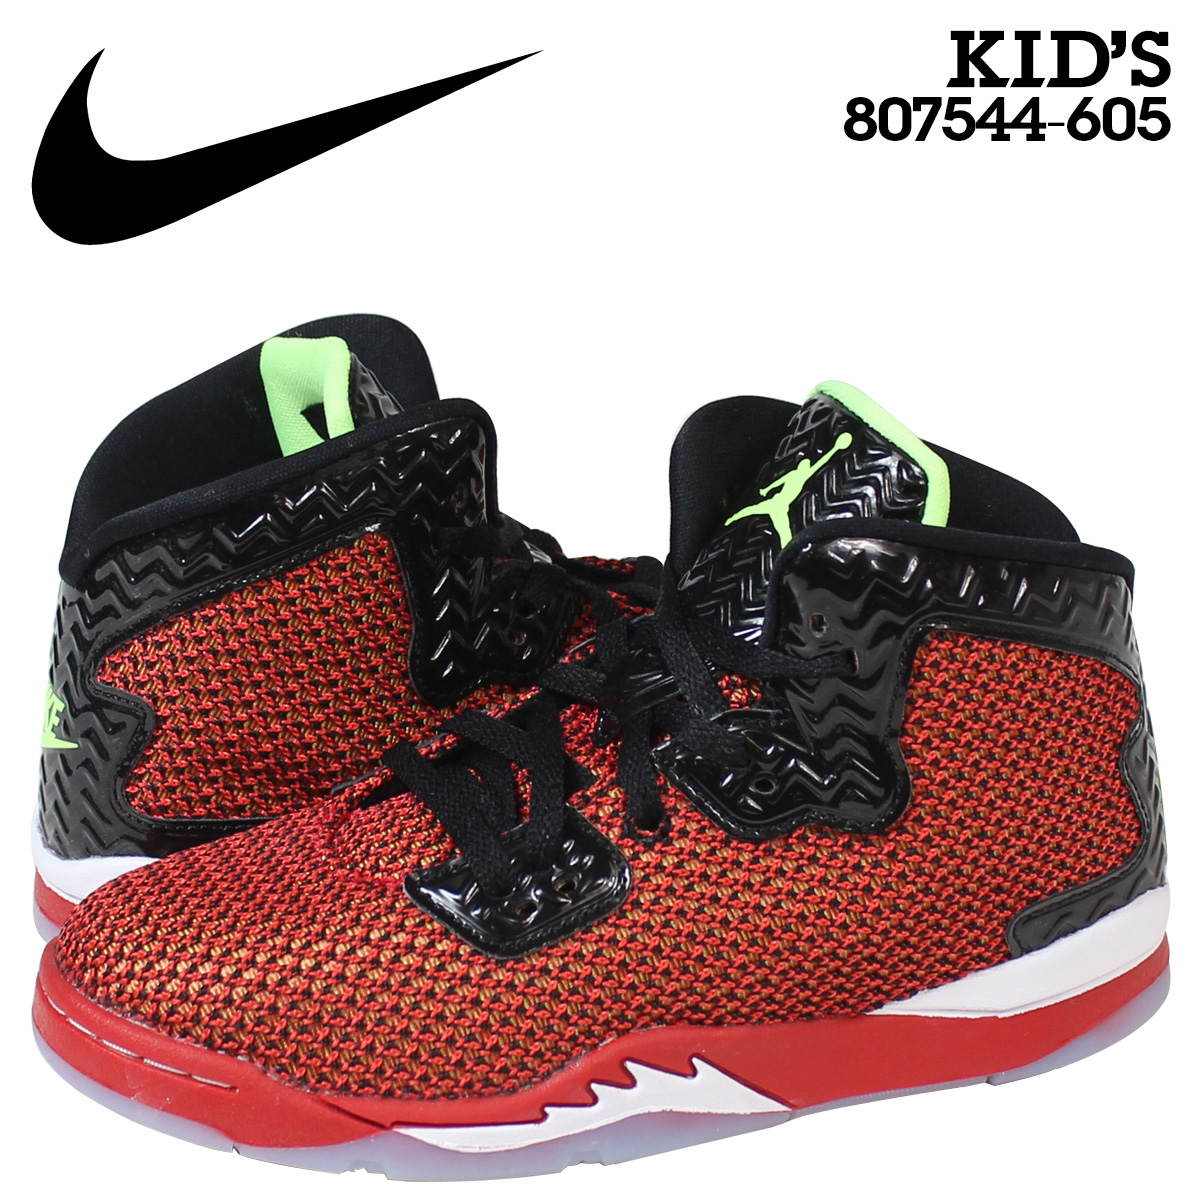 michael jordan shoes for kids